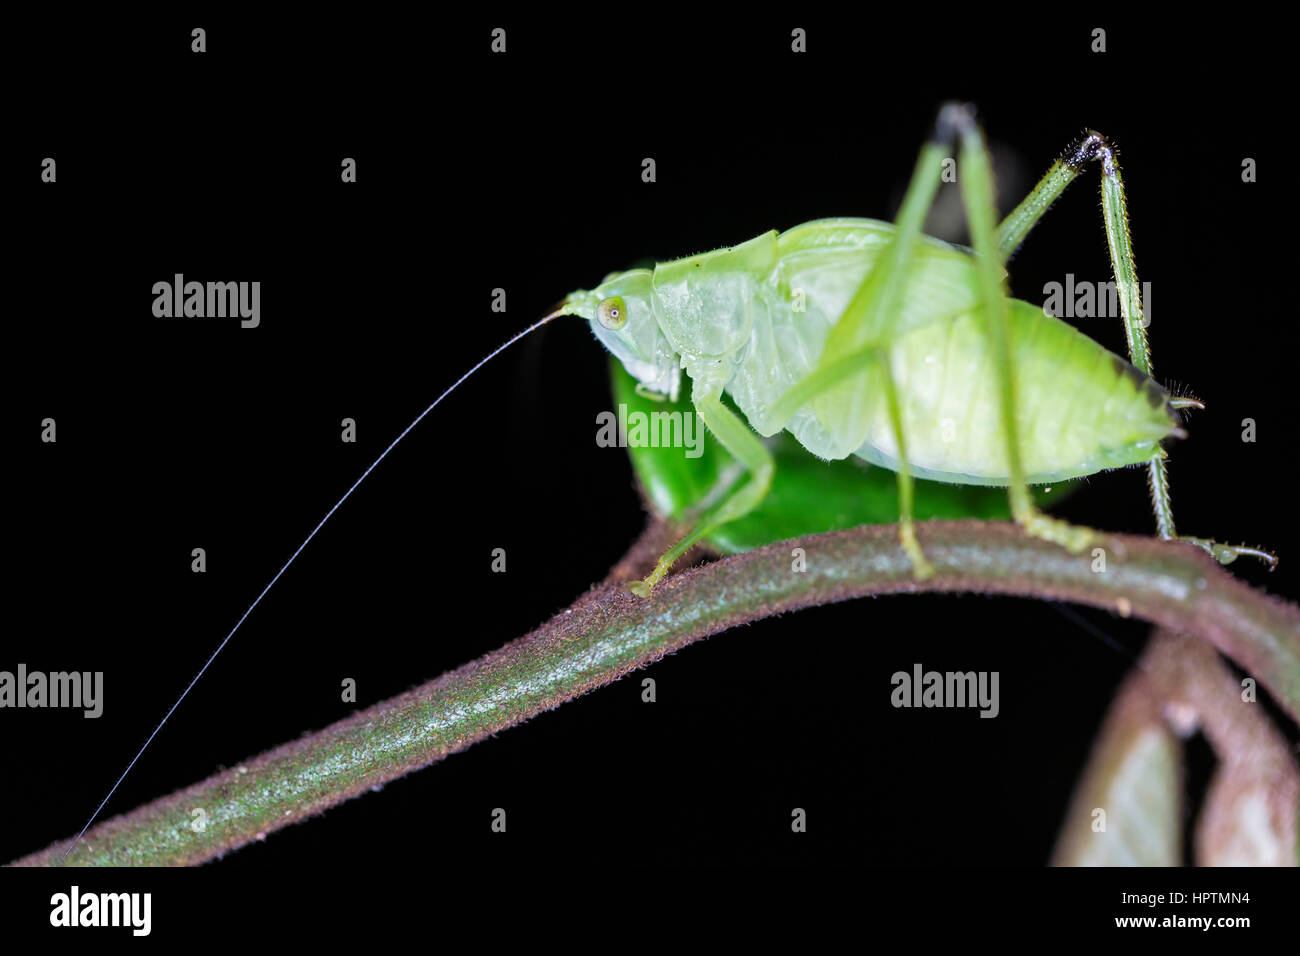 Peru, Manu National Park, Oblong-Winged katydid on twig - Stock Image